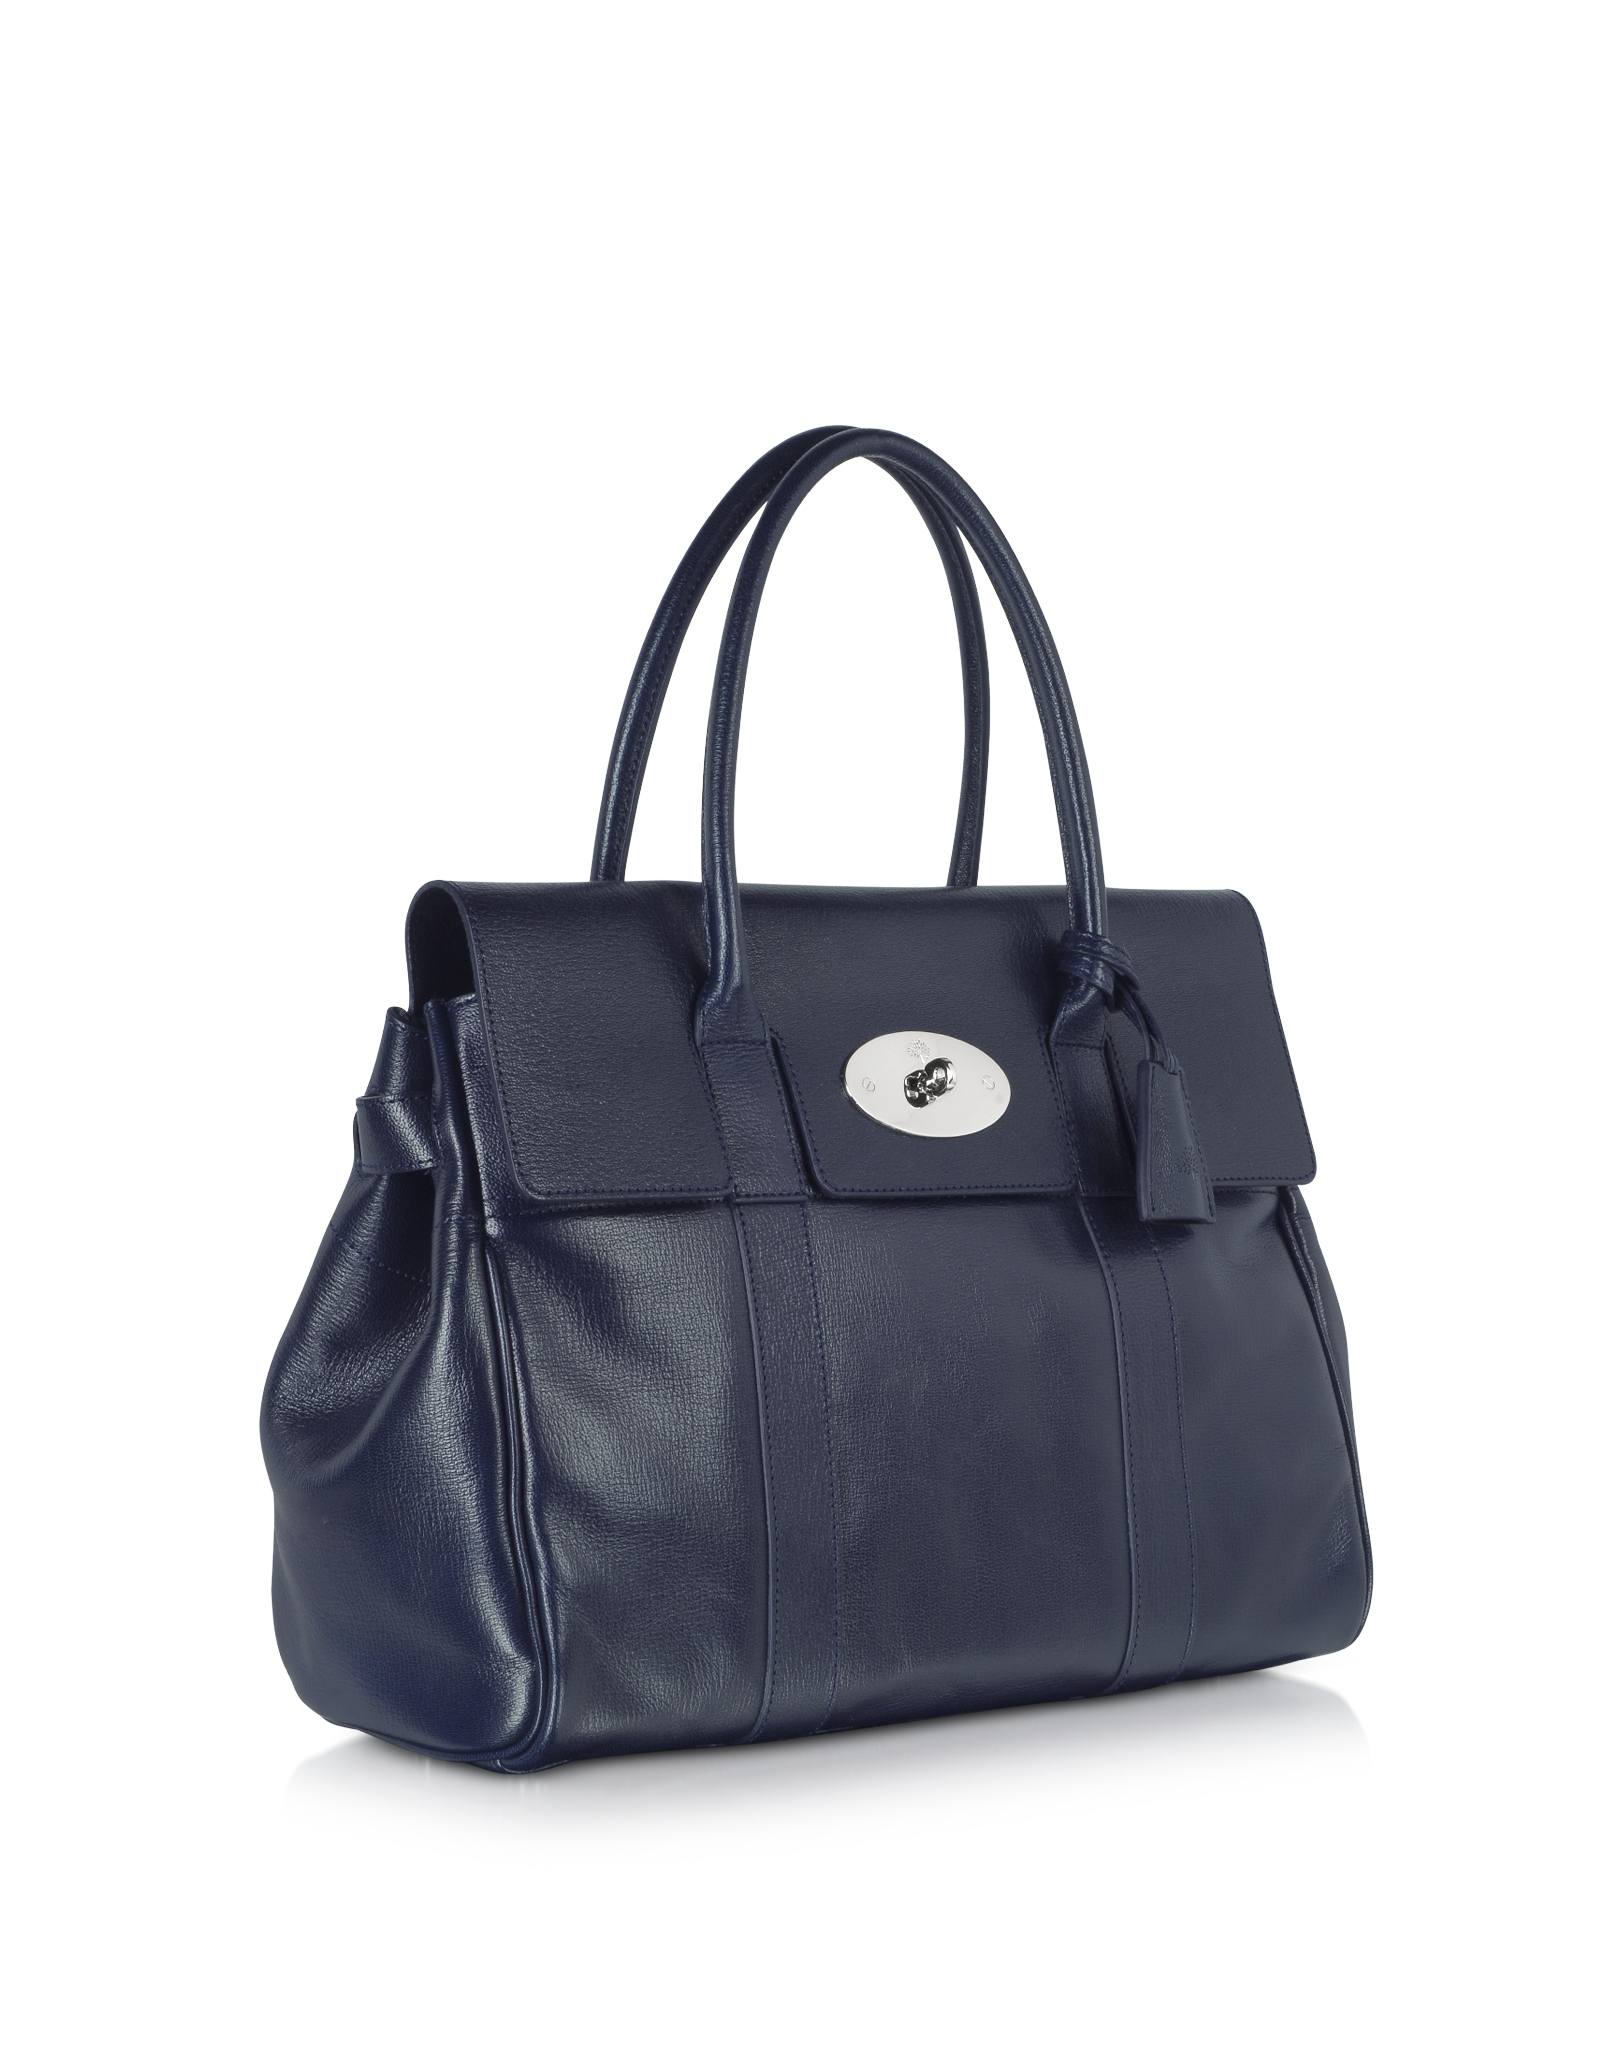 ... ireland lyst mulberry midnight blue shiny goat bayswater tote in blue  23469 67b8e 9af18864d257d